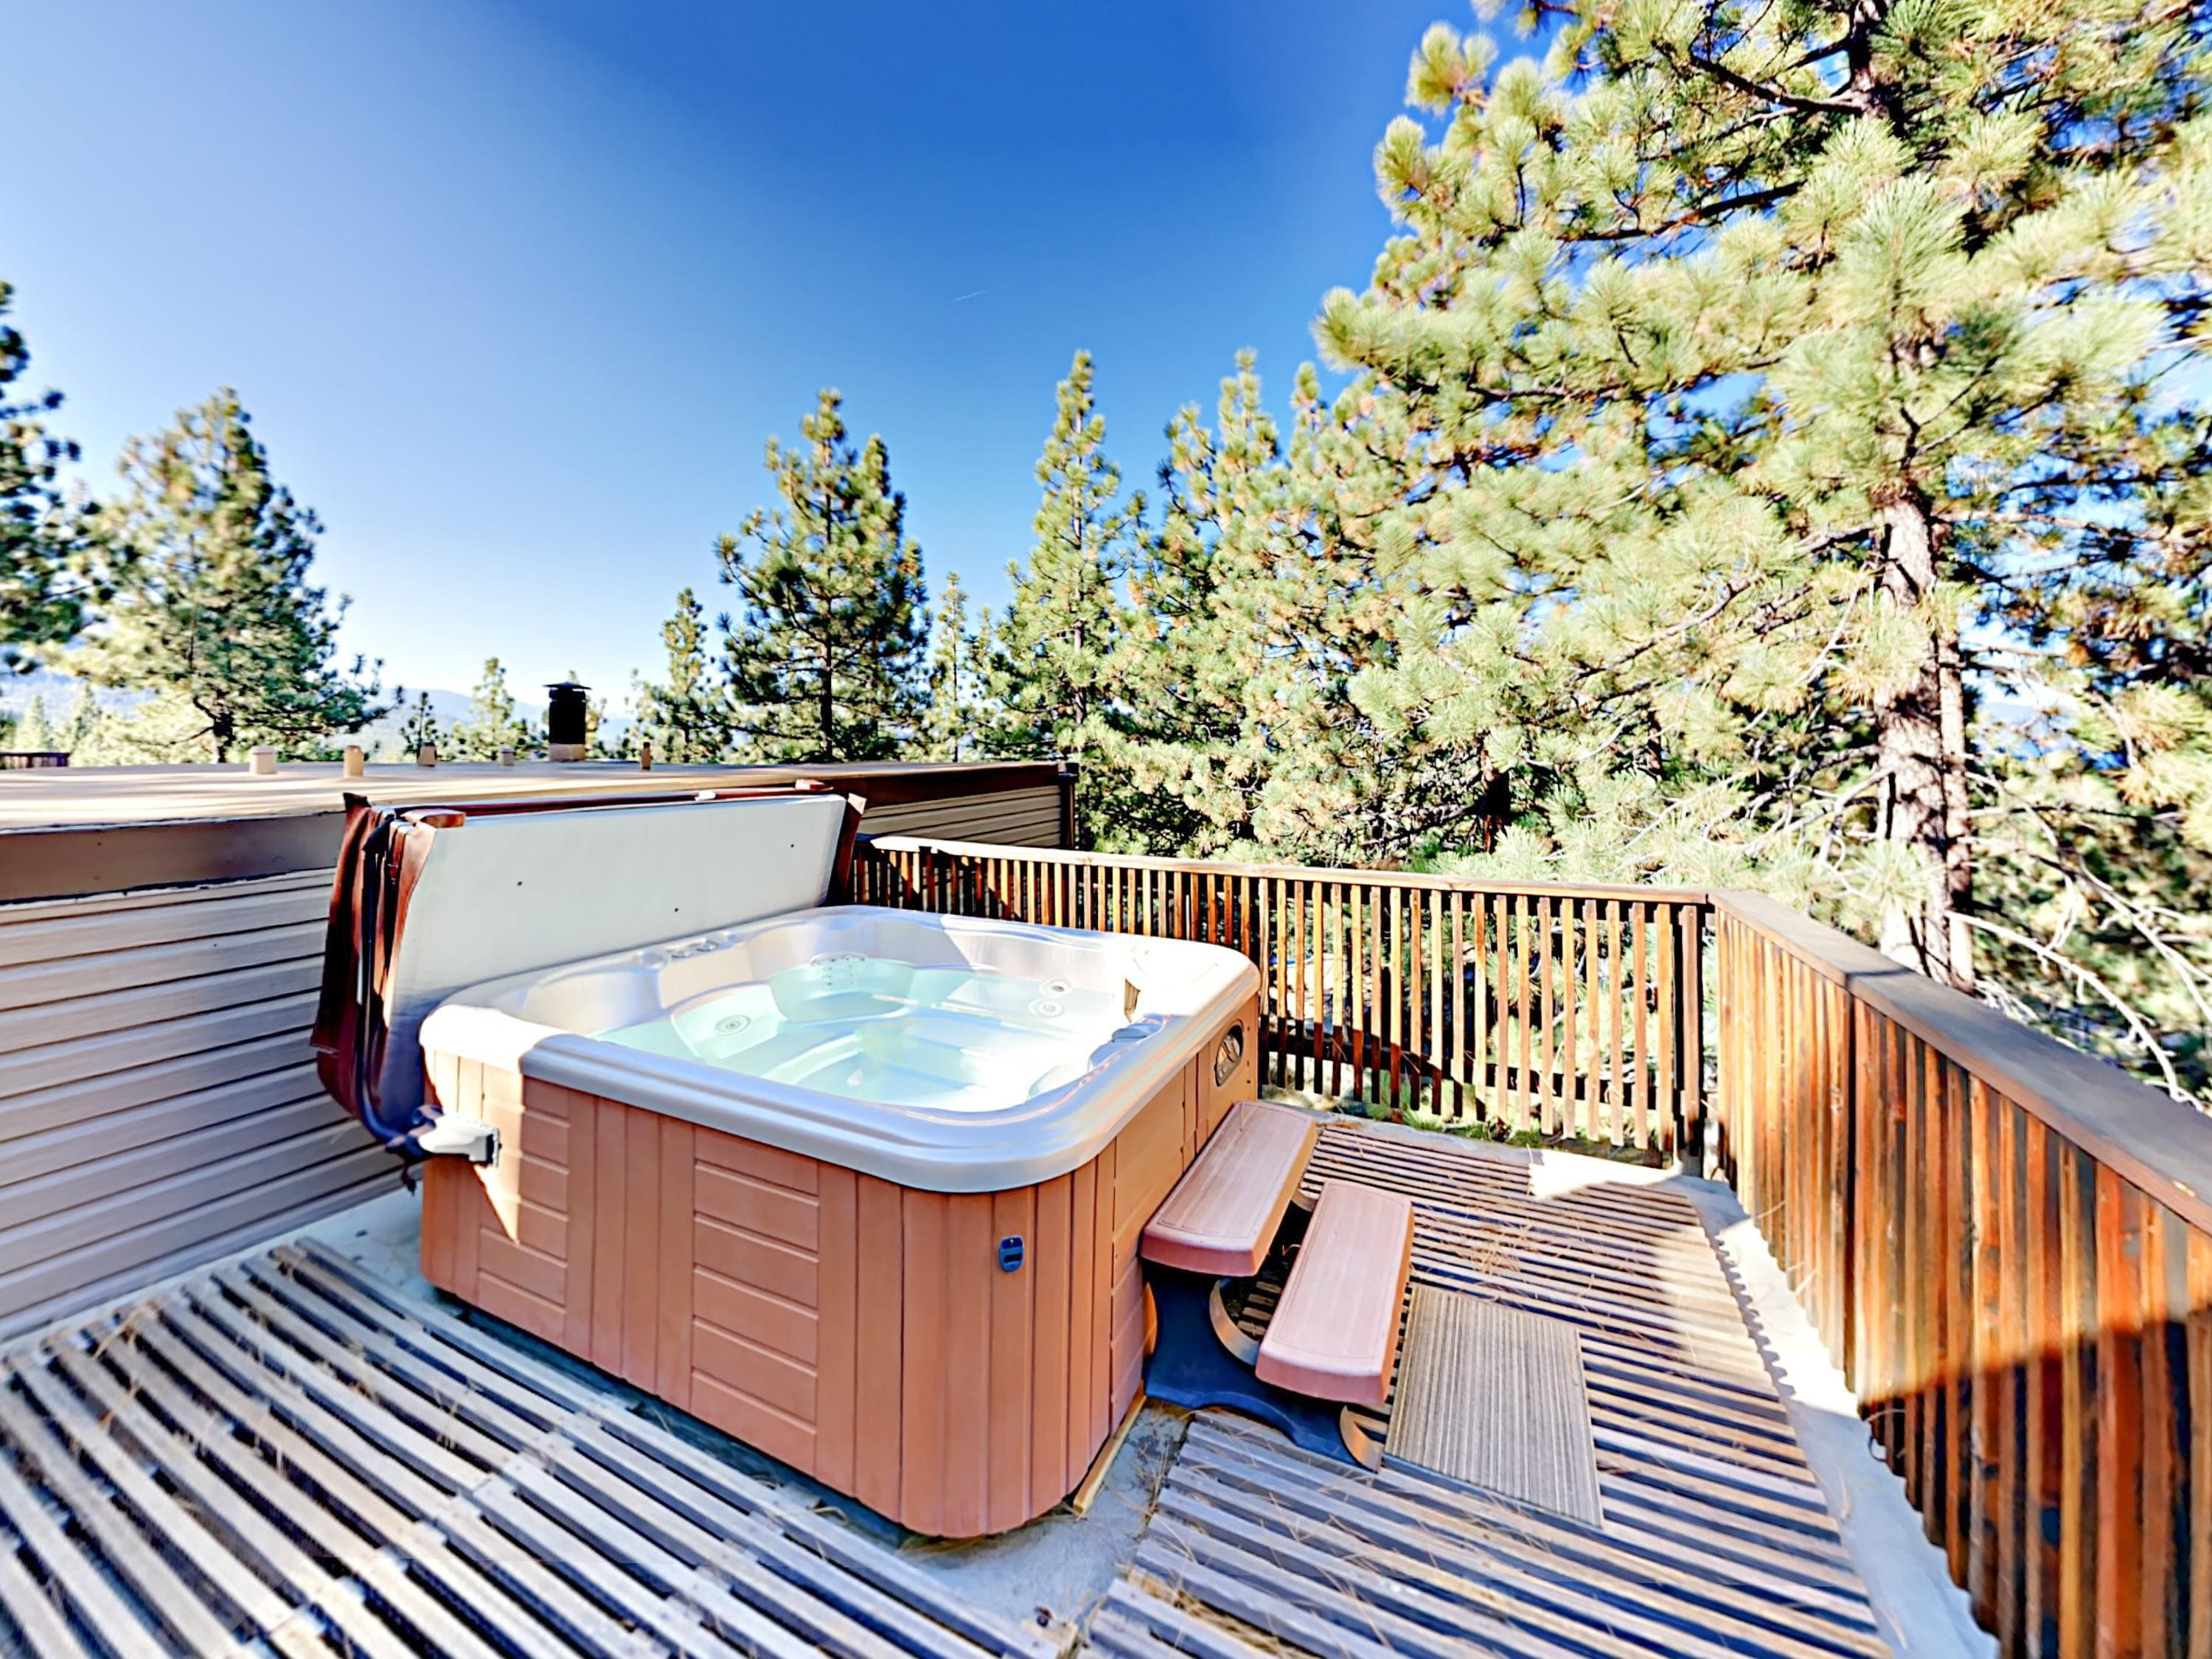 Lake Village Condo with Lake Views from Rooftop Hot Tub